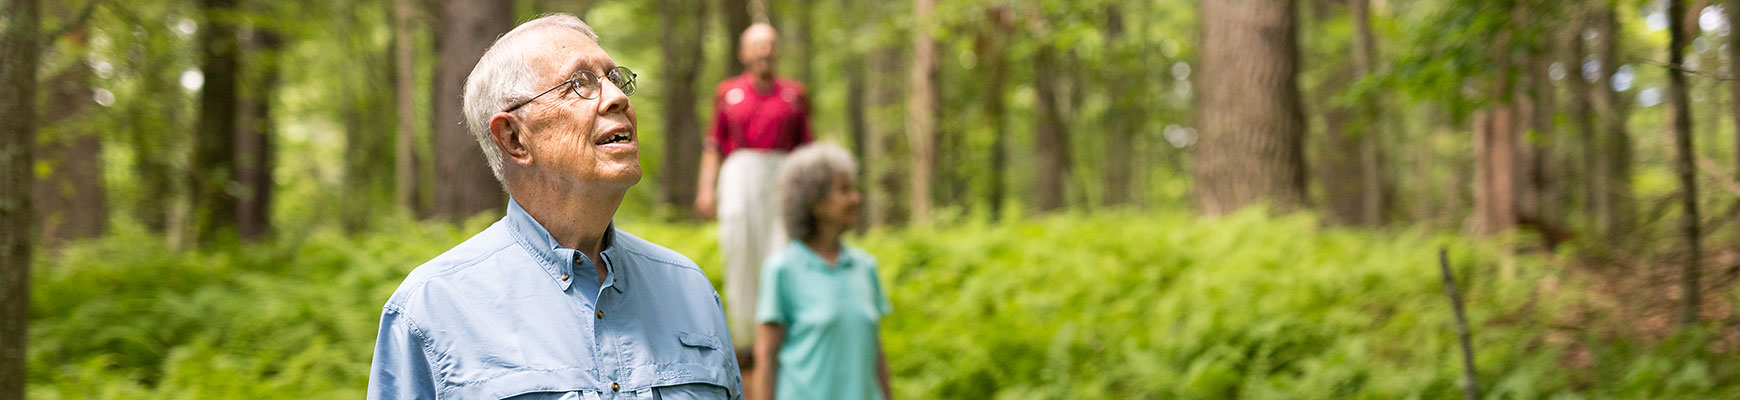 Three seniors are on a hike in a wooded area